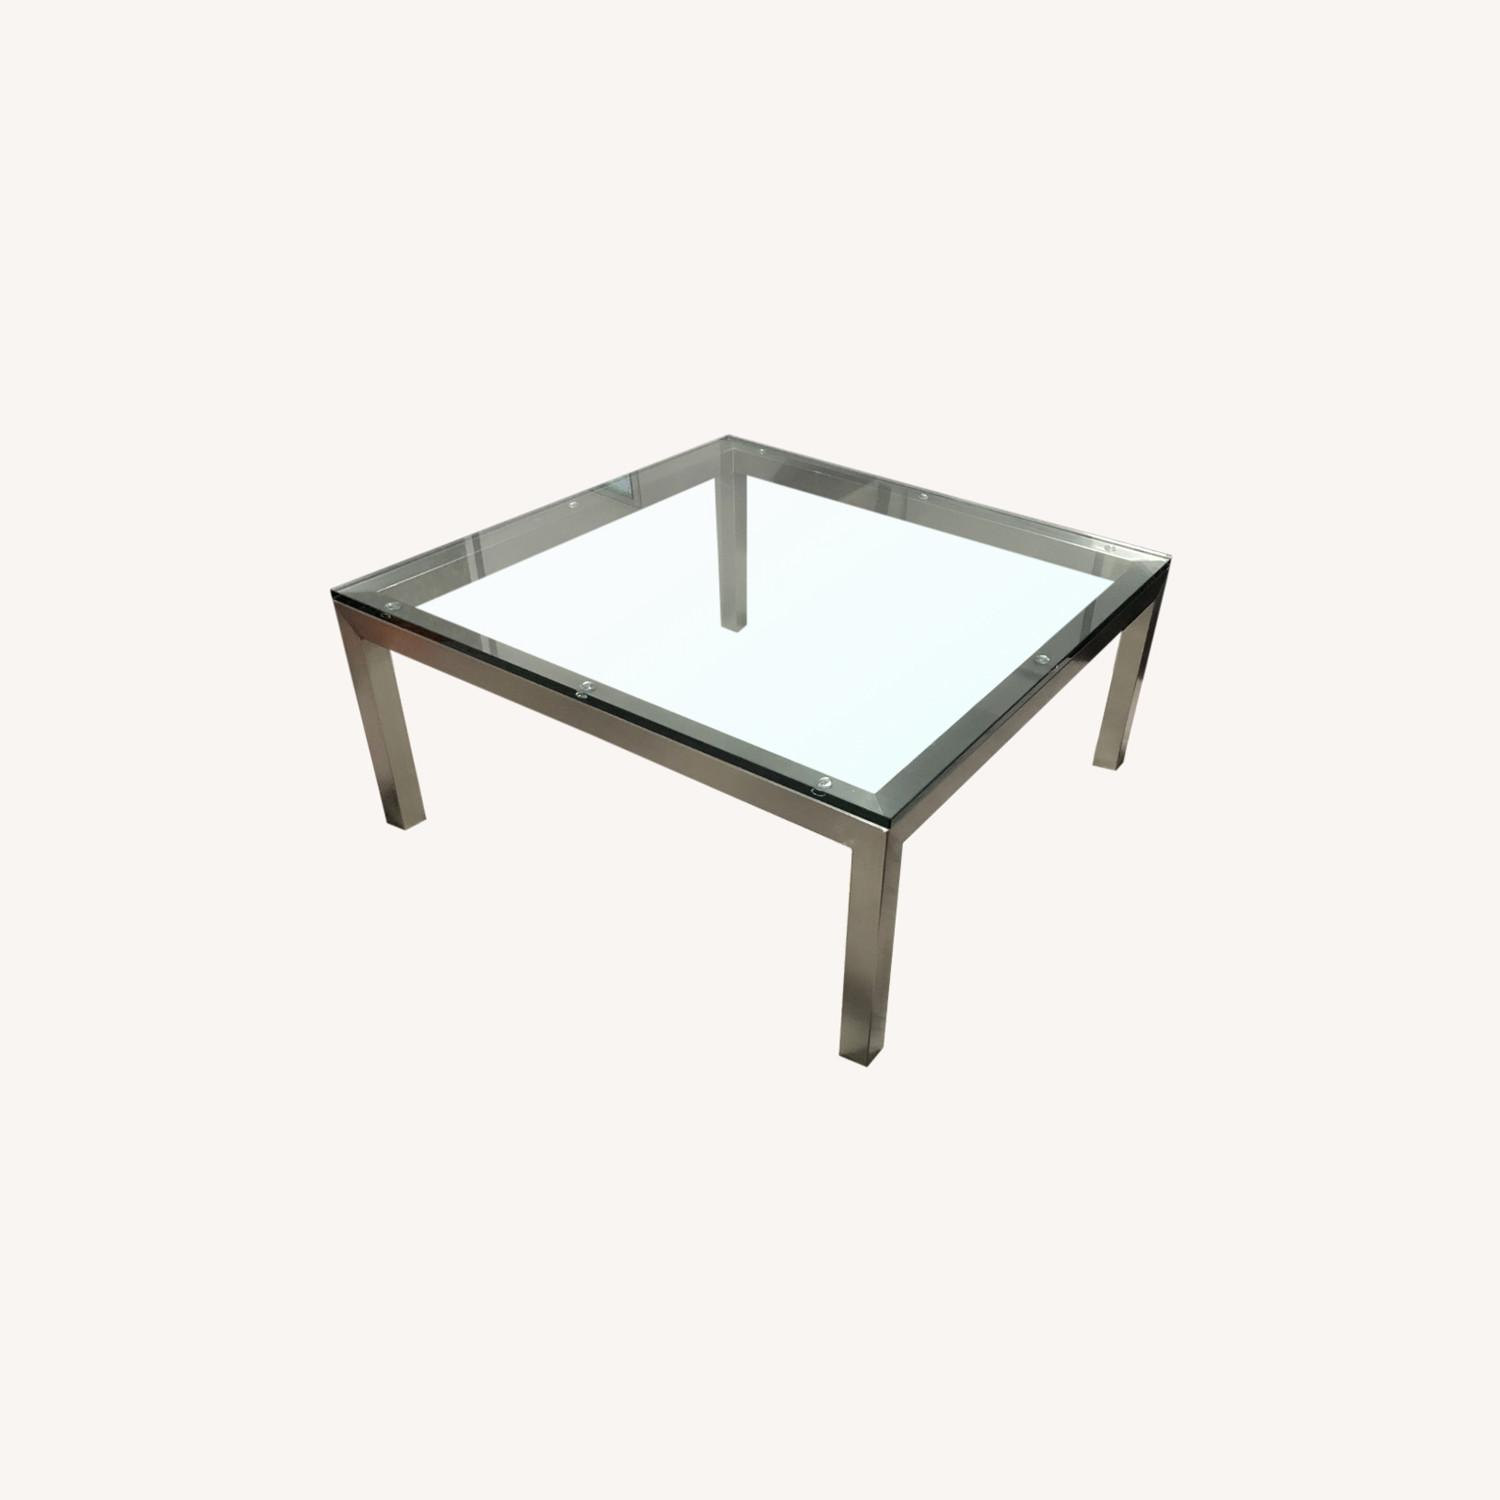 Crate & Barrel Parson's Glass Square Coffee Table - image-0